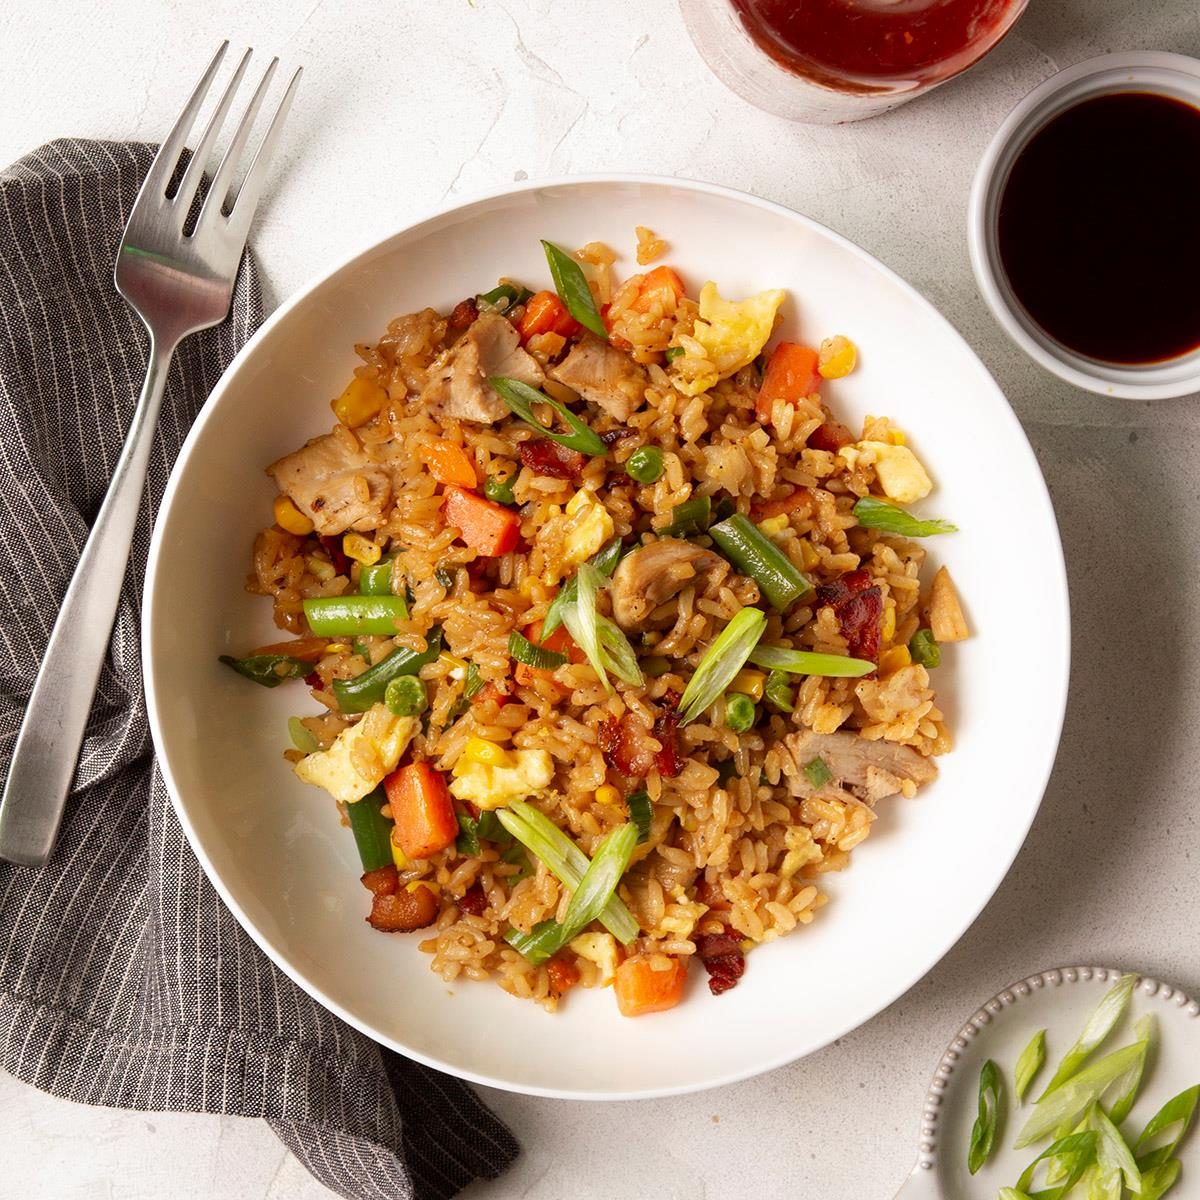 Tuesday: Easy Fried Rice